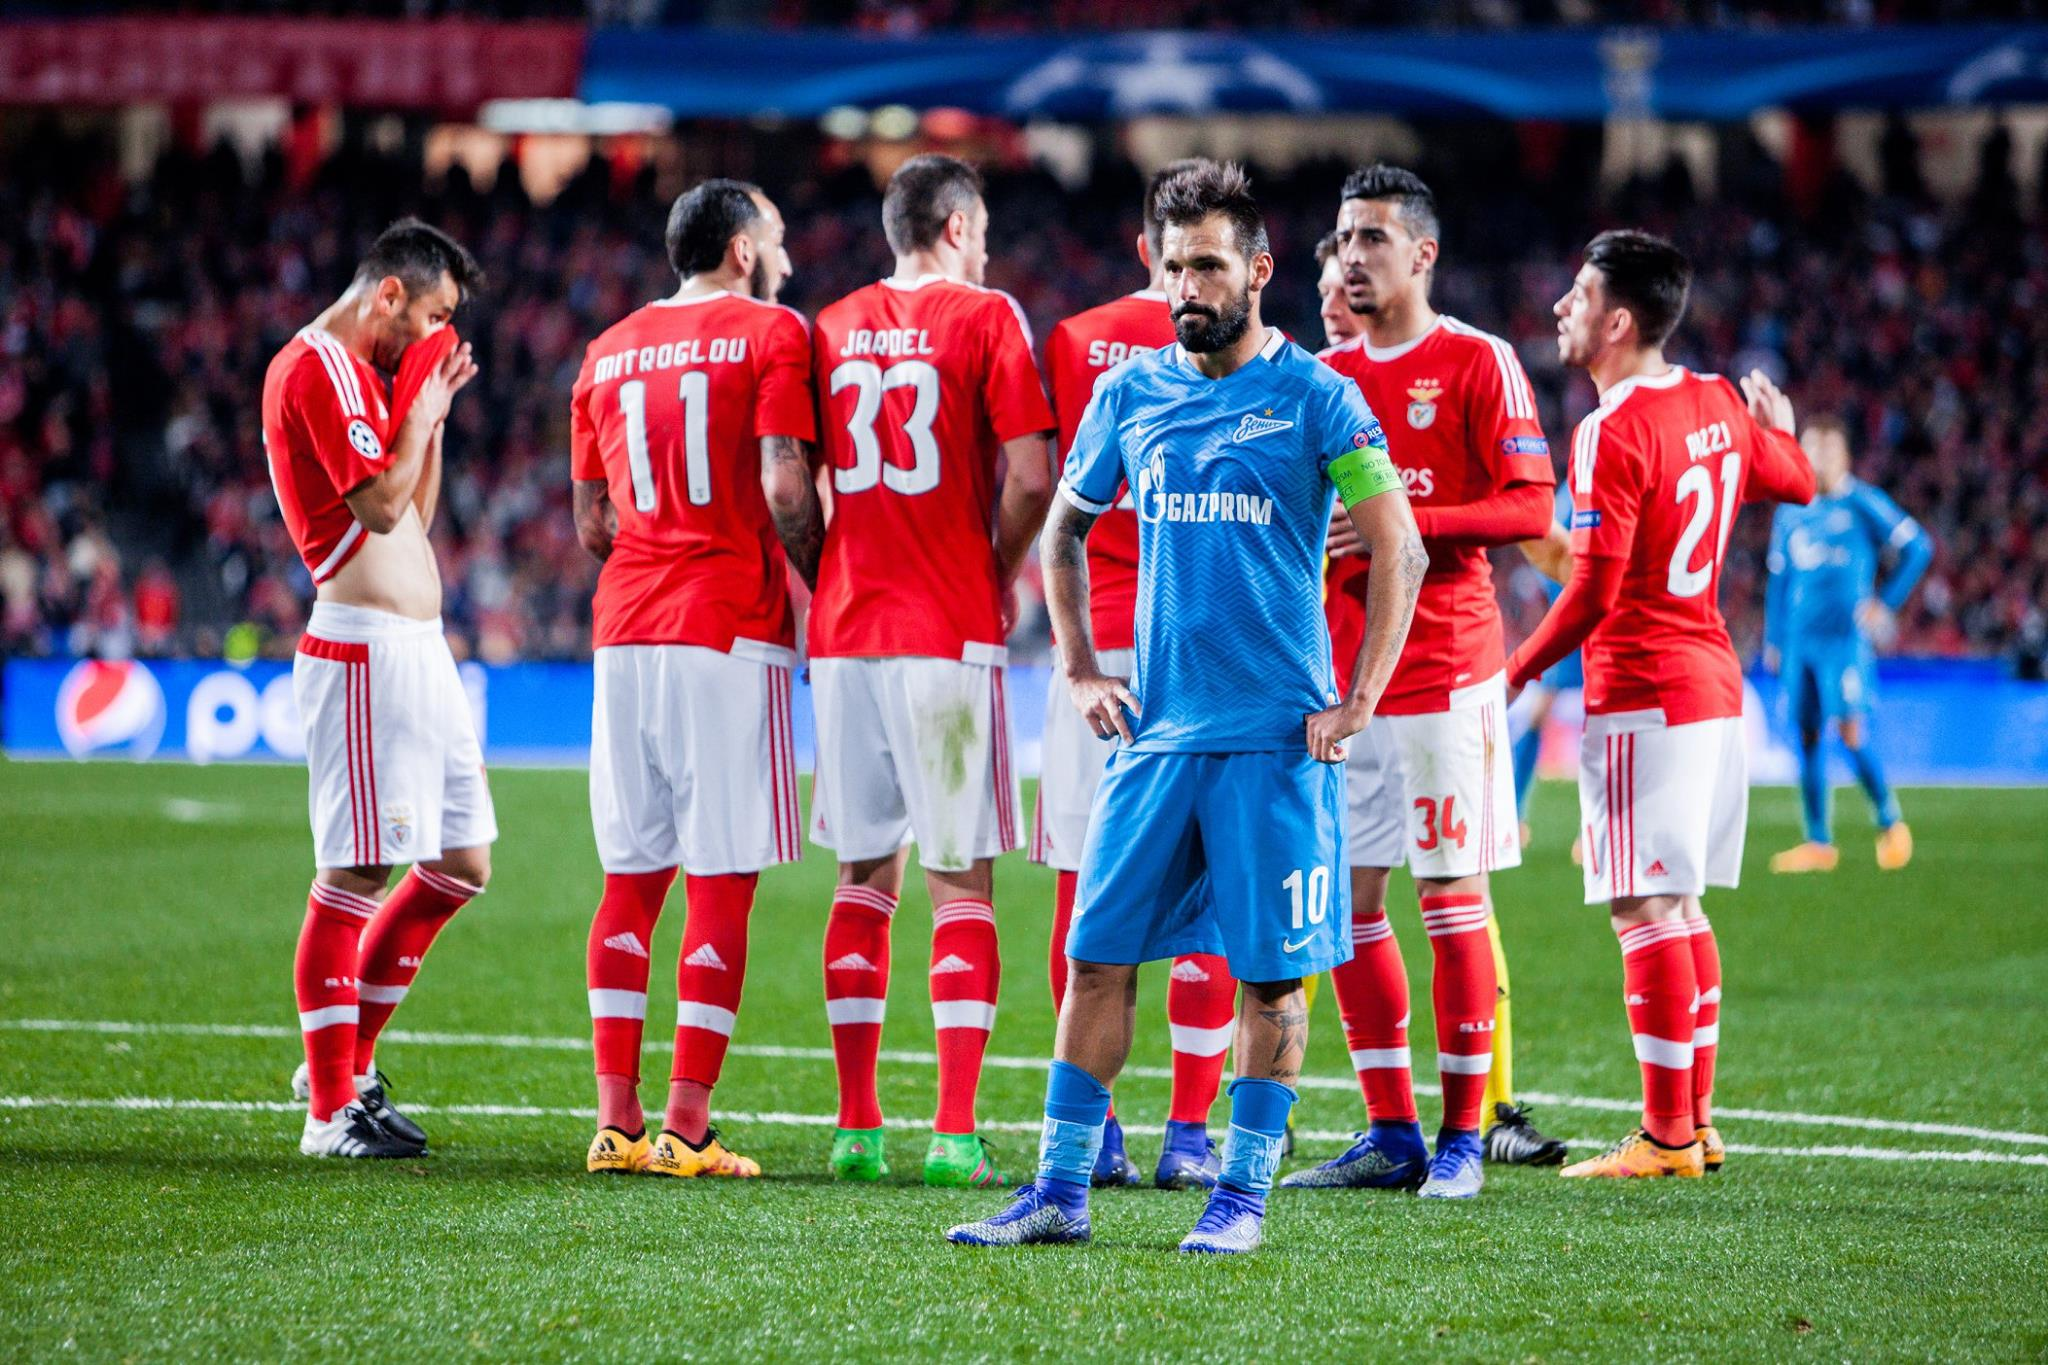 Will FC Zenit be able to bounce back after first-leg's defeat at Estádio da